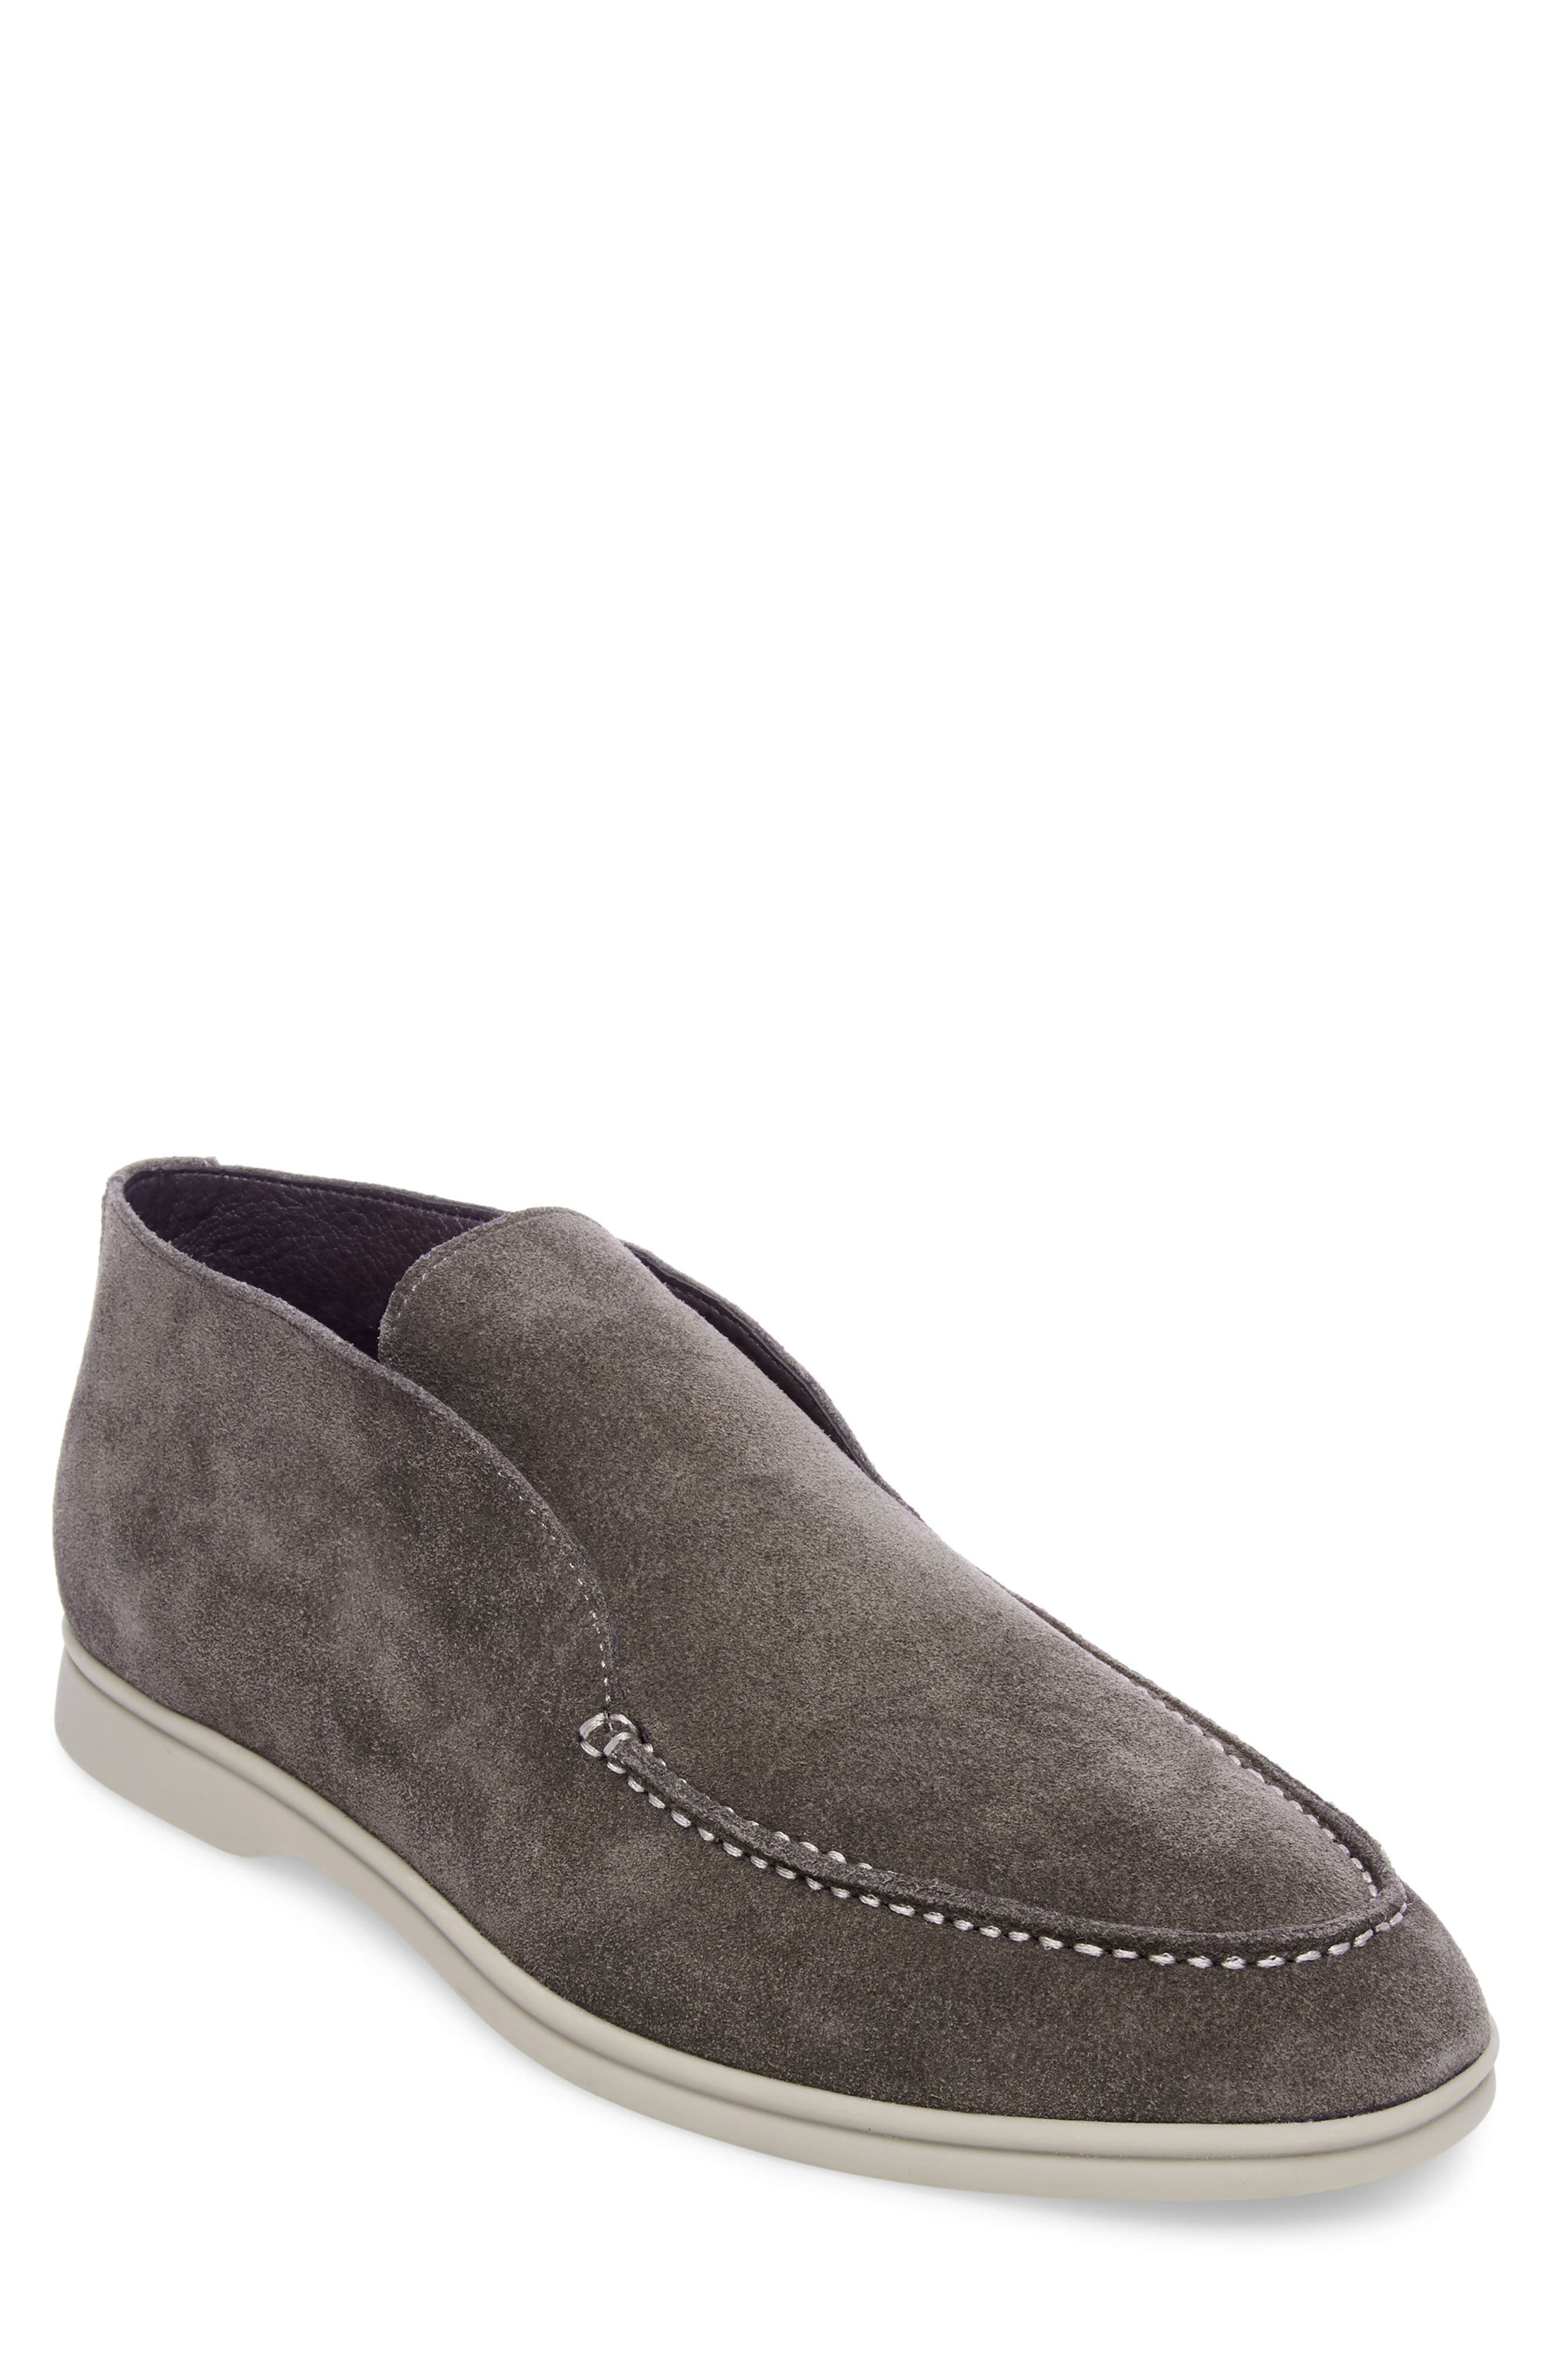 Lost Boot,                         Main,                         color, Taupe Suede